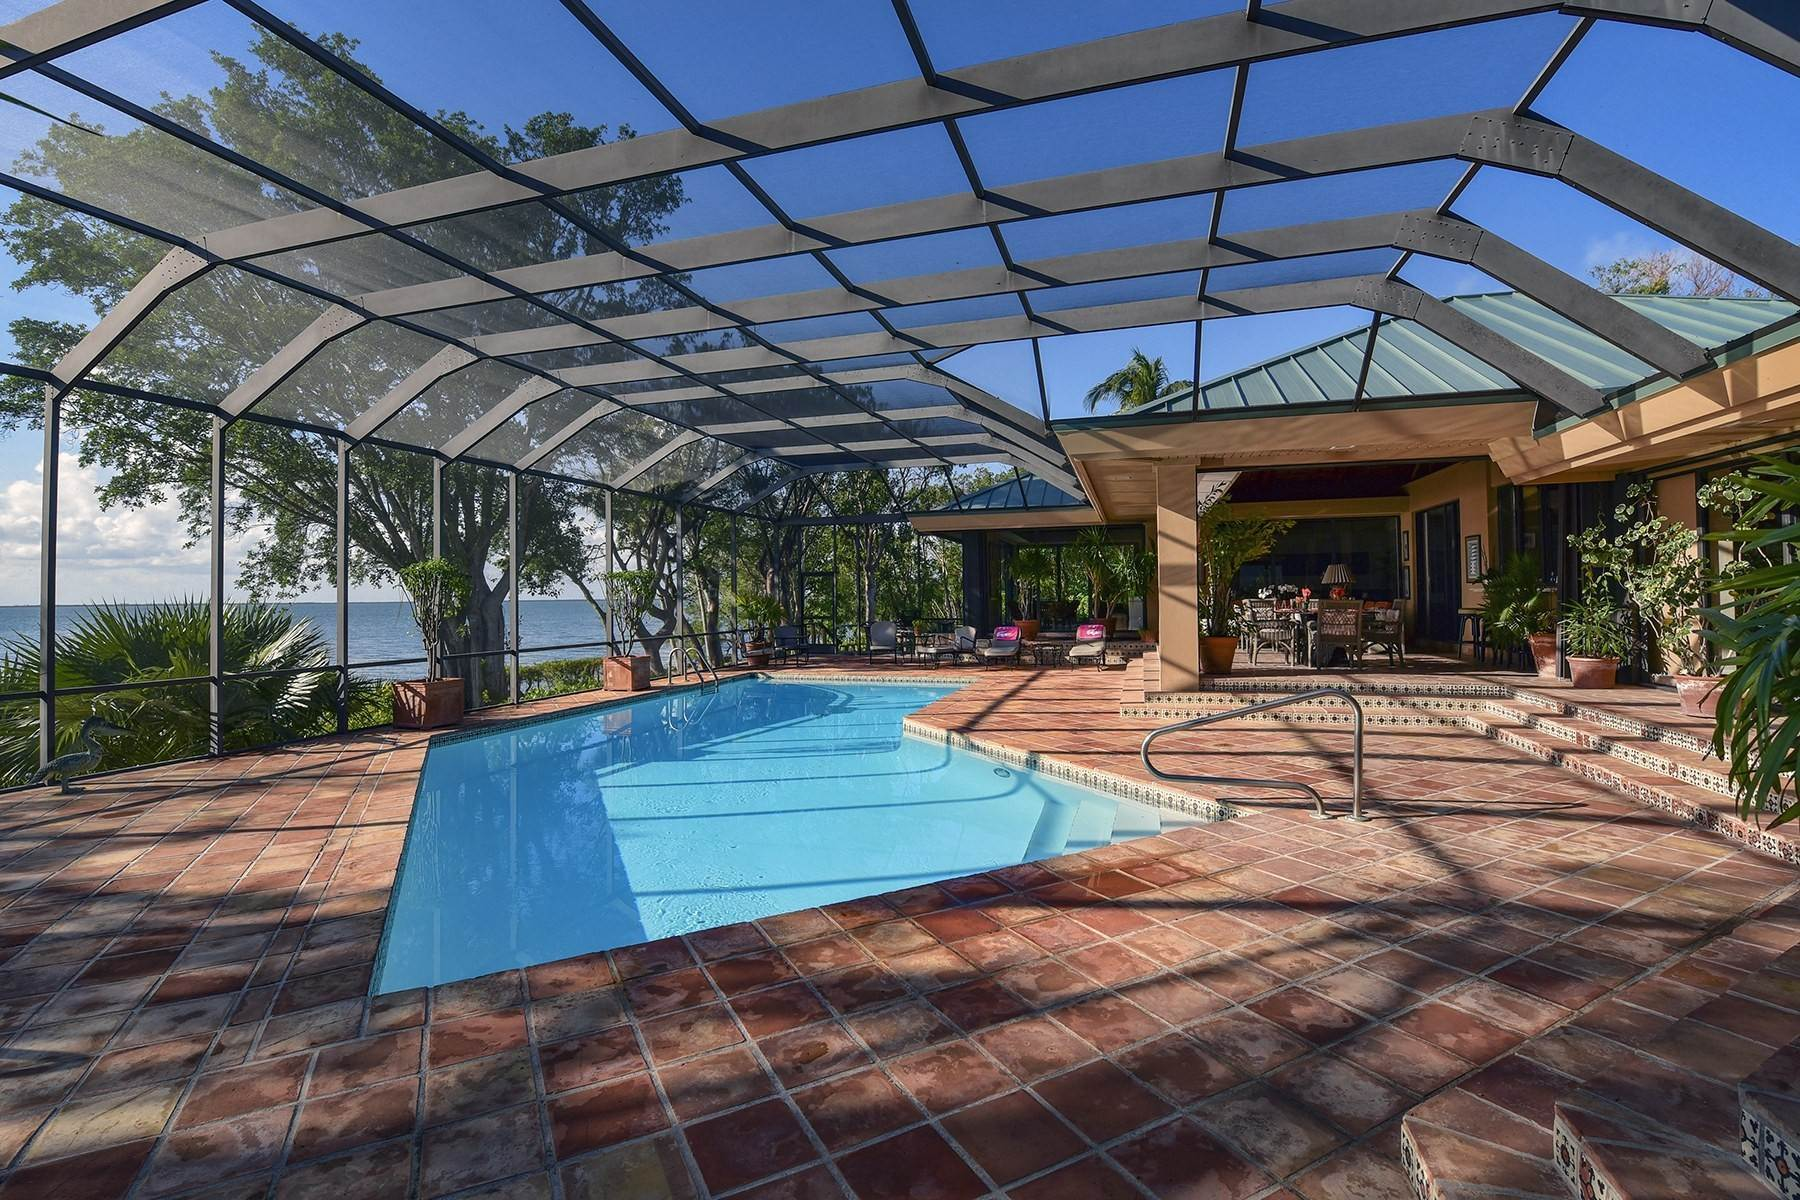 11. Property for Sale at Pumpkin Key - Private Island, Key Largo, FL Pumpkin Key - Private Island Key Largo, Florida 33037 United States